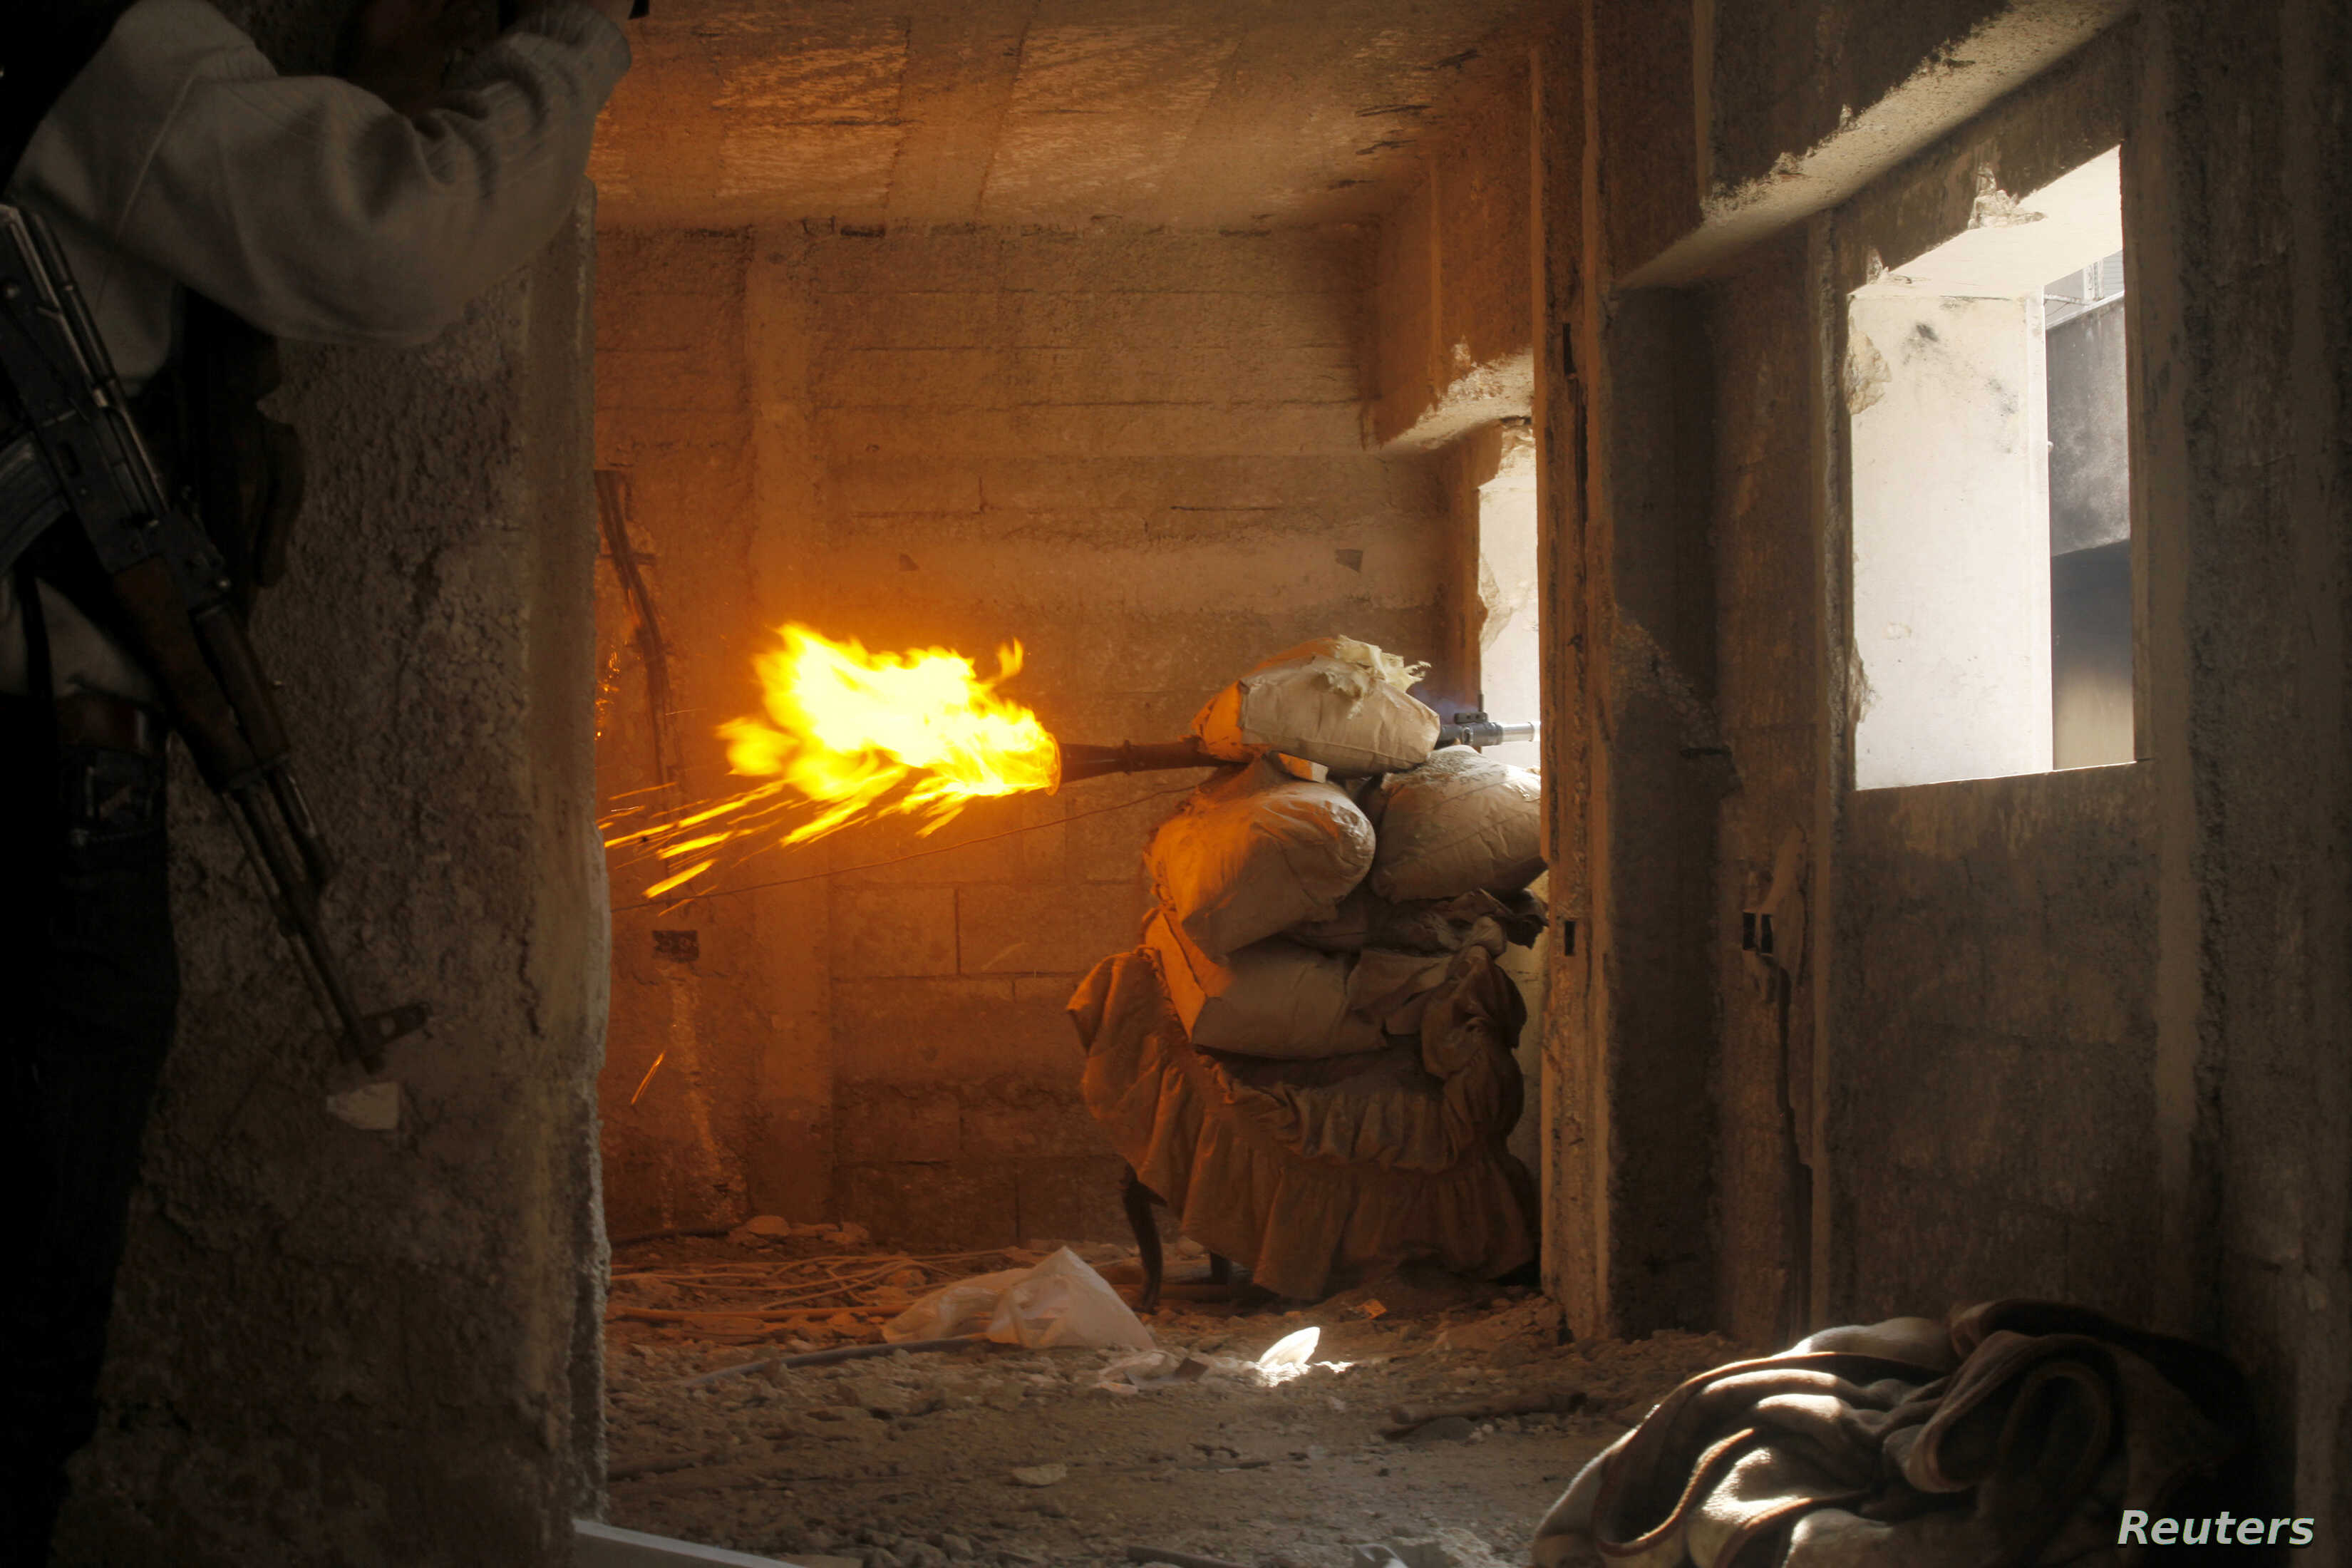 Free Syrian Army fighters take cover while firing a rocket on the front line in Izaa district in Aleppo Feb. 24, 2013.